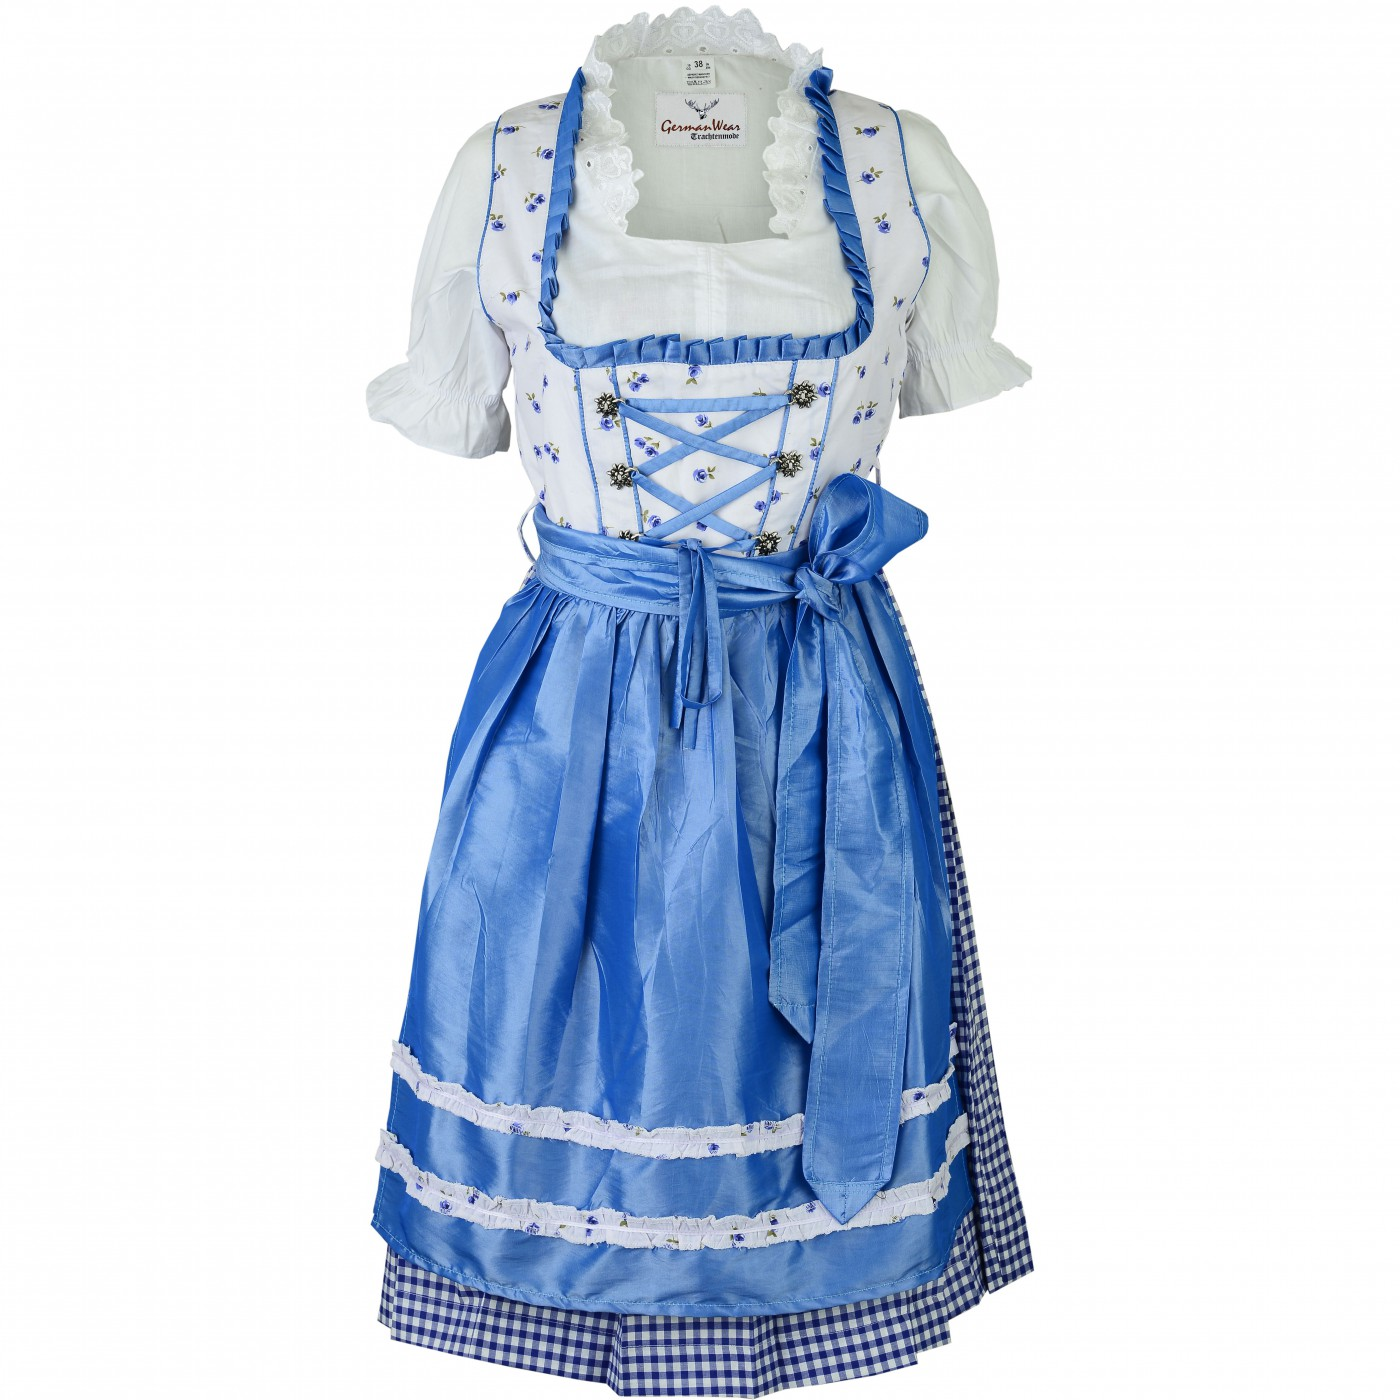 3 pieces midi dirndl dress set bavaria oktoberfest lederhosen blau wei. Black Bedroom Furniture Sets. Home Design Ideas